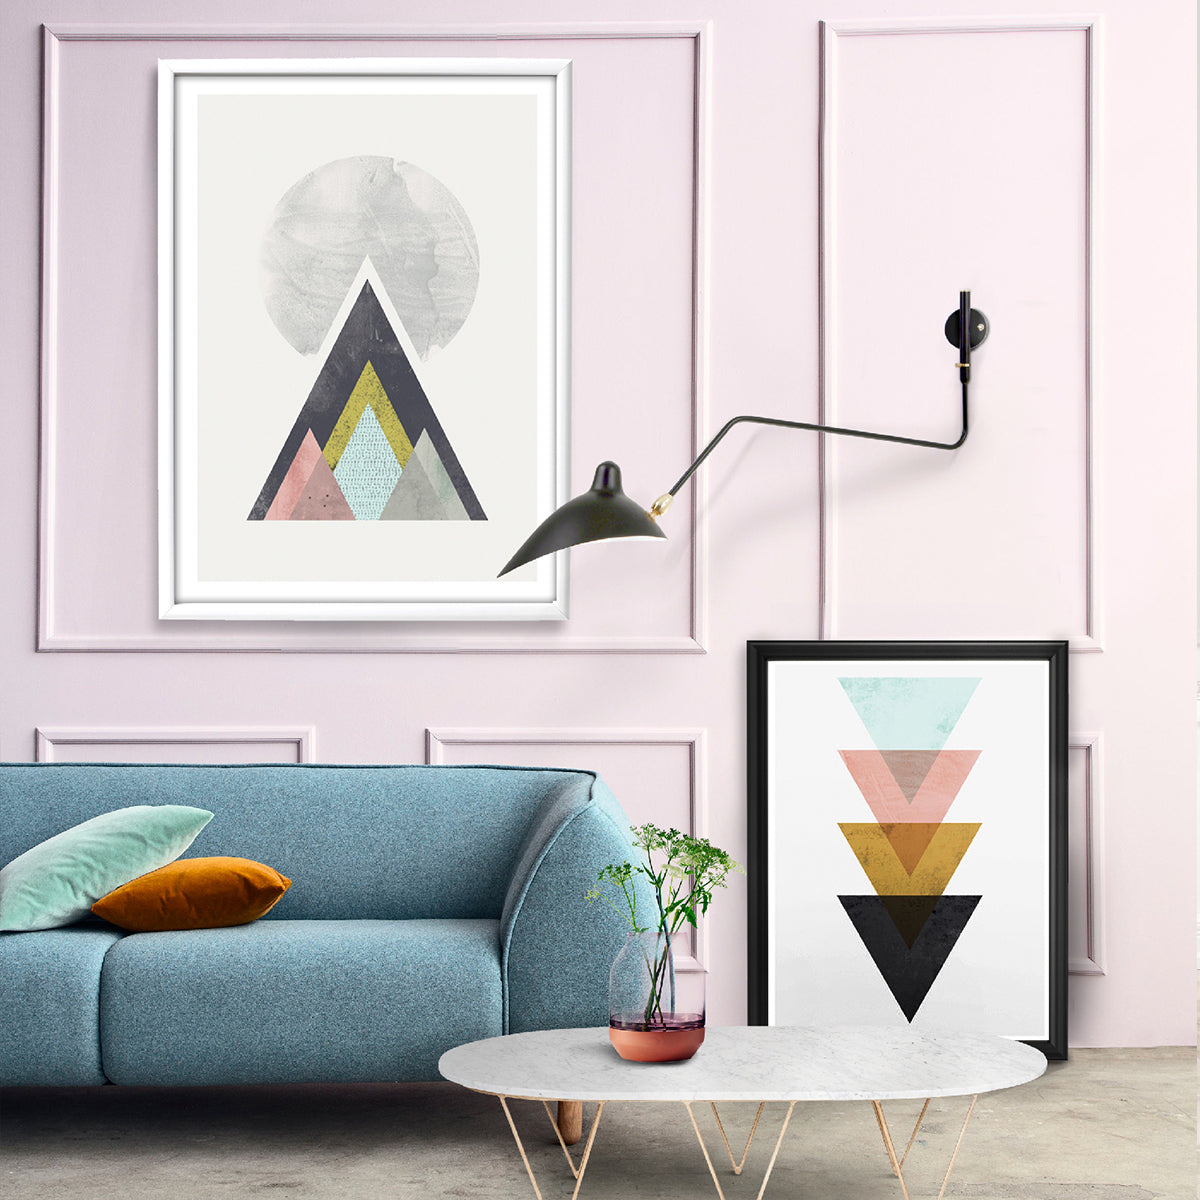 Geometric abstract prints